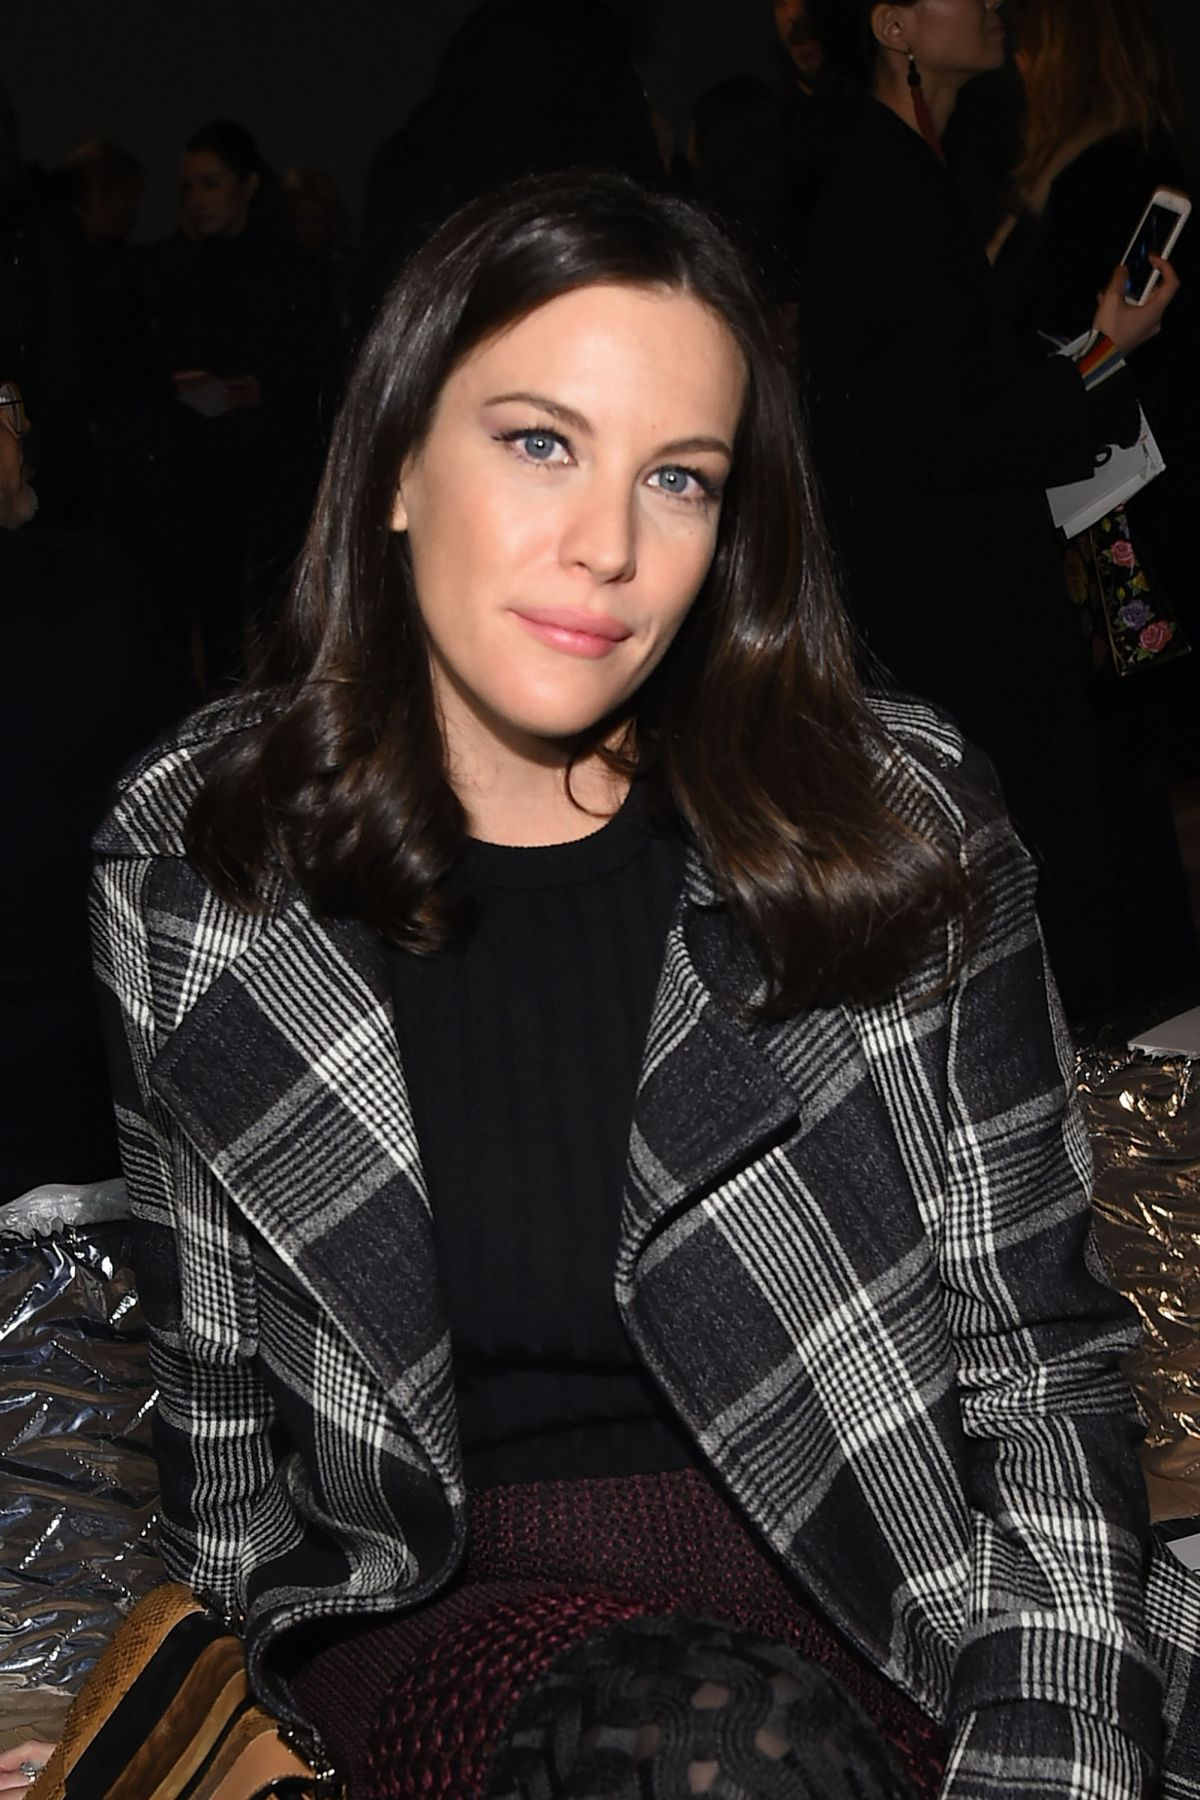 LIV TYLER at Proenza Schouler Fashion Show in New York 02/17/2016 ... Liv Tyler